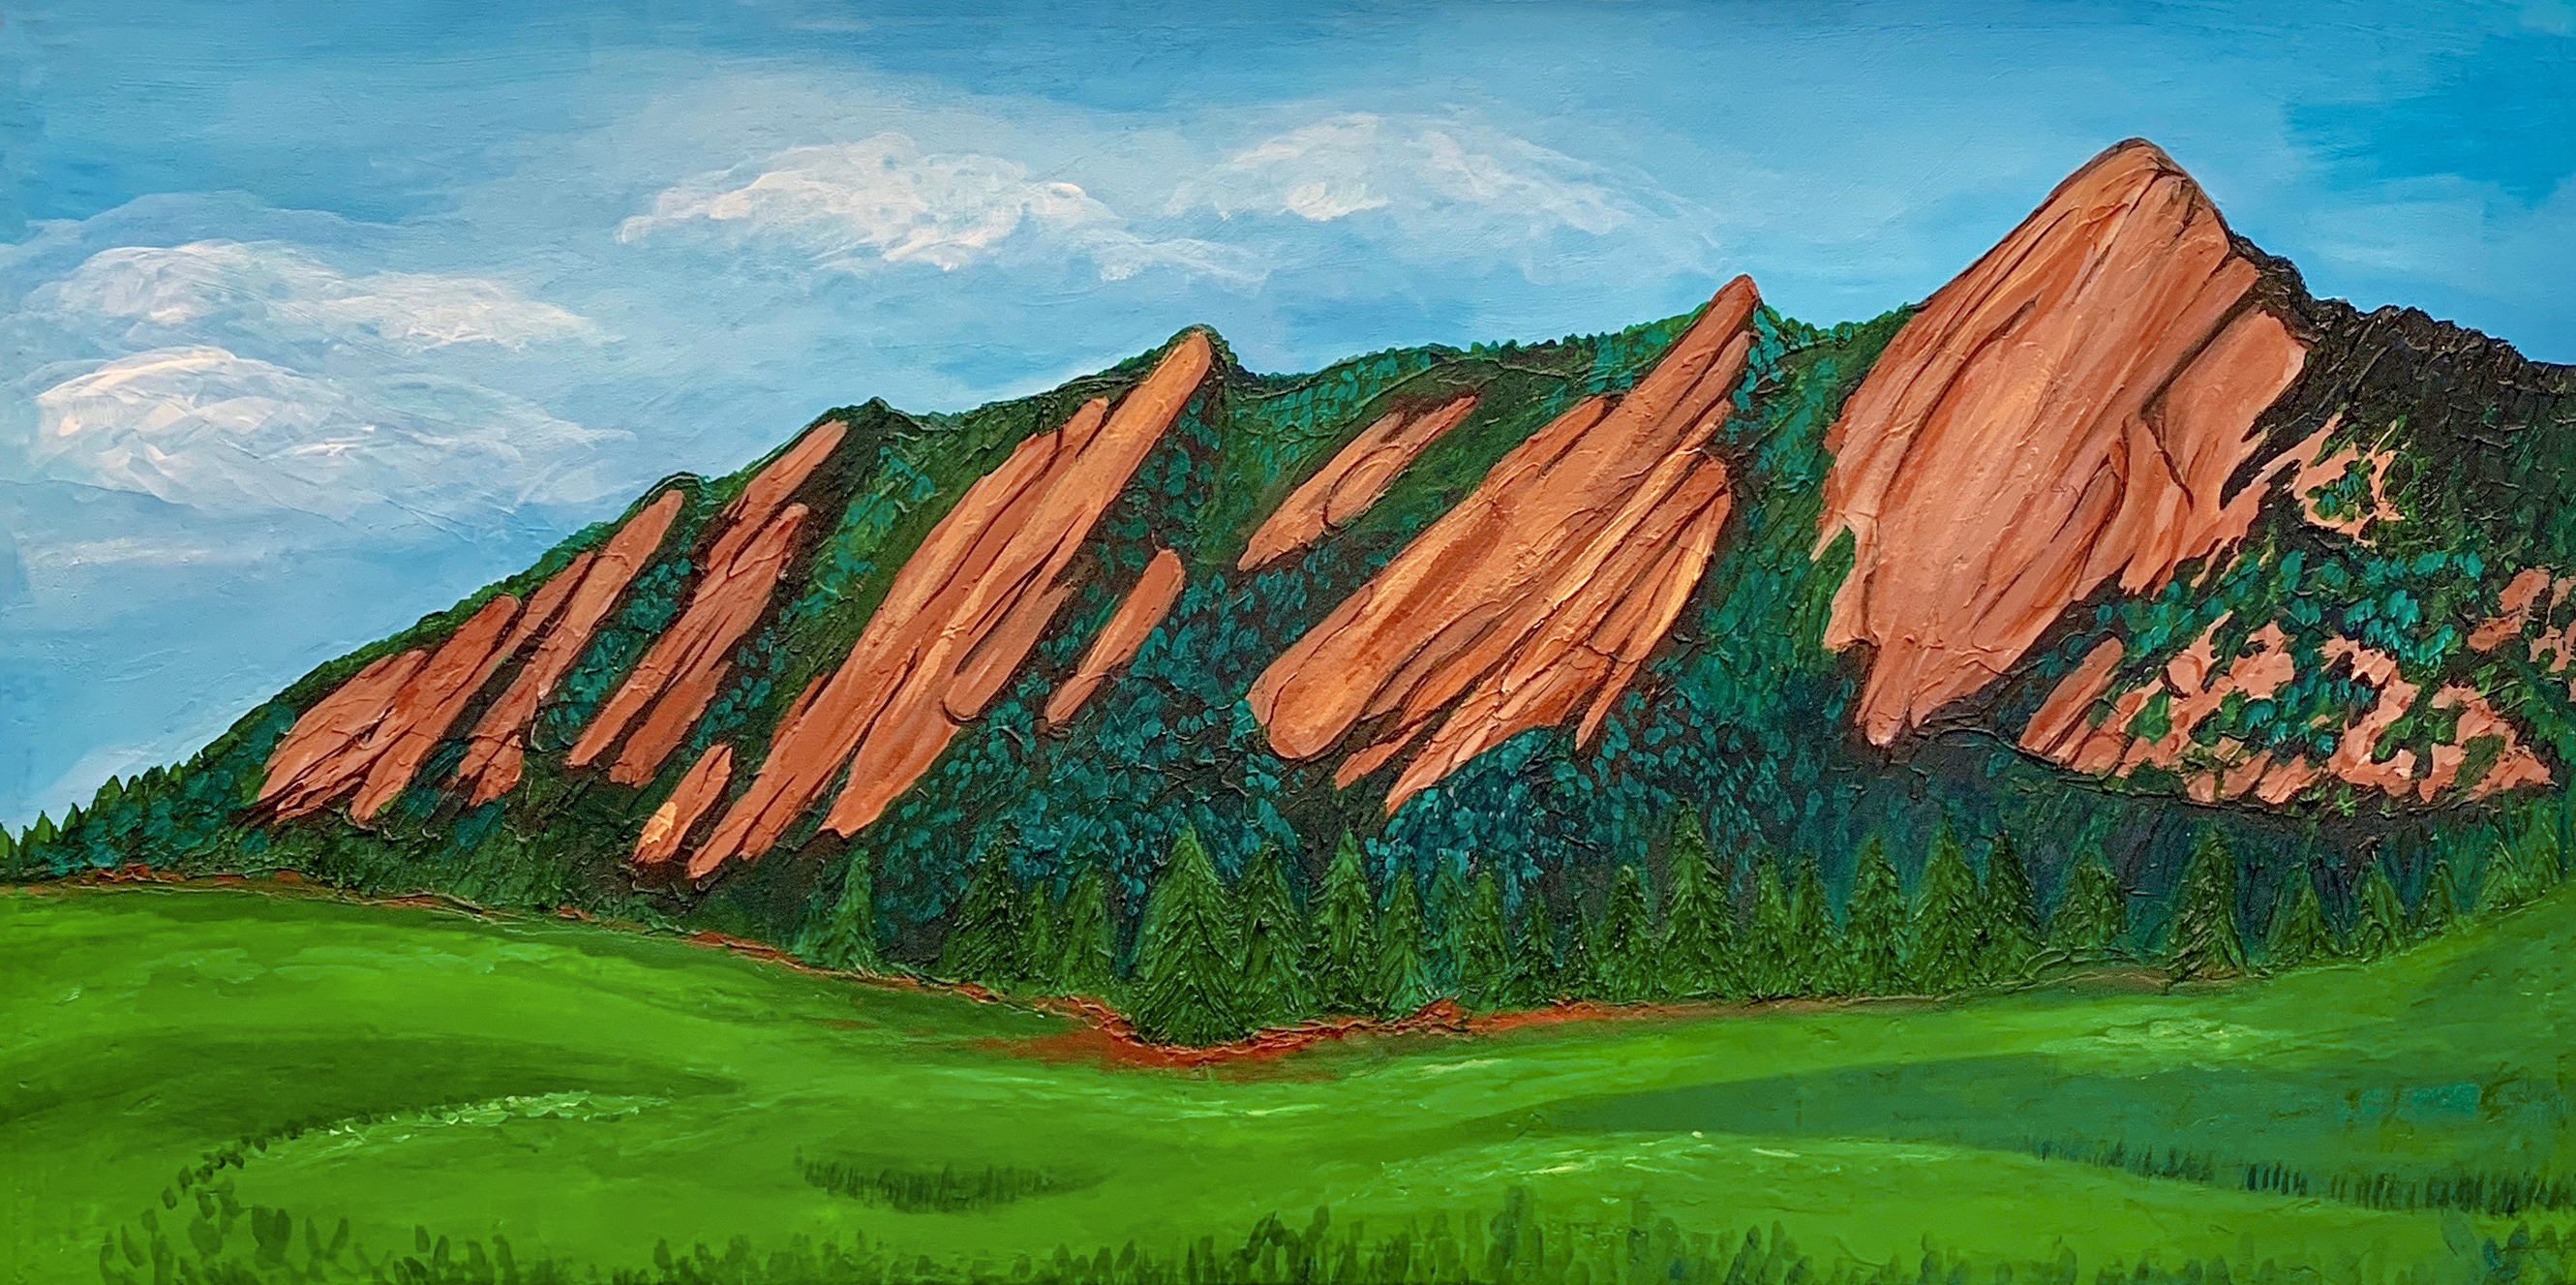 Flat Irons painting